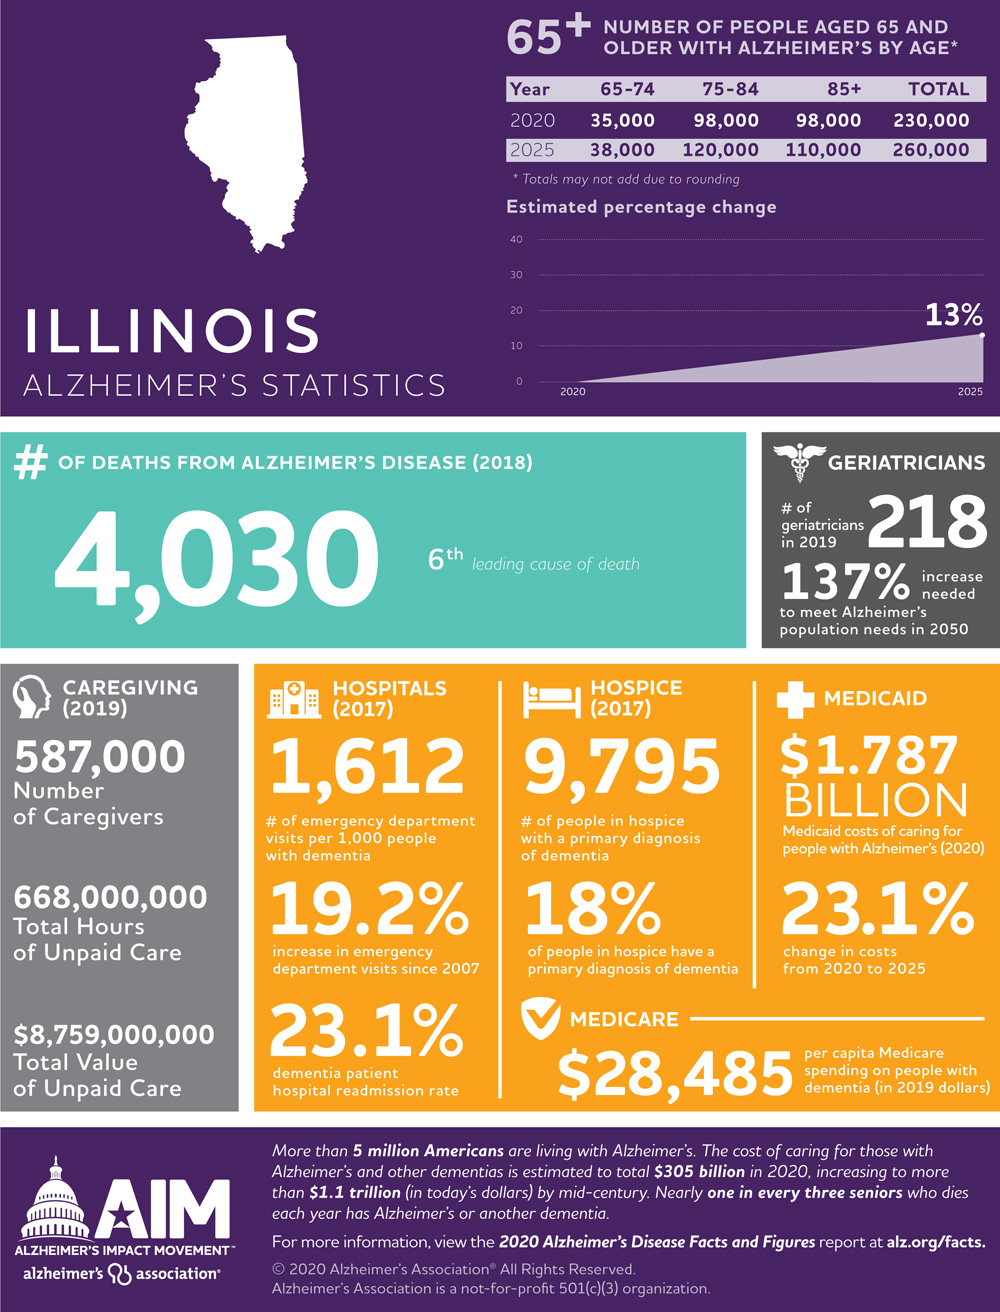 Illinois 2020 Facts and Figures